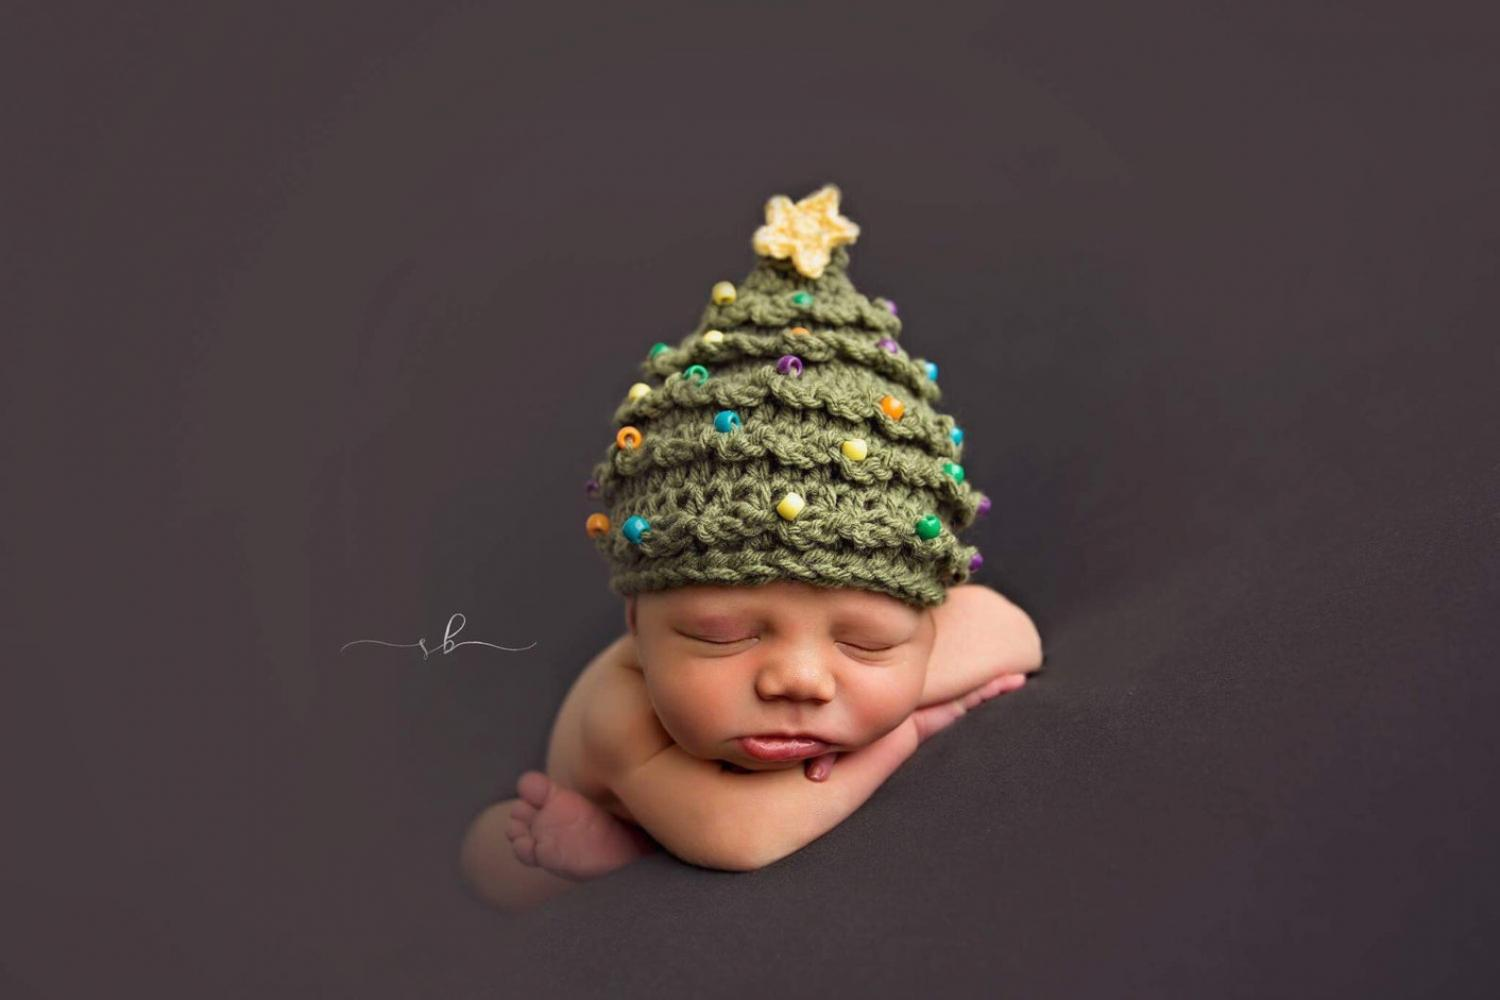 Christmas Tree Hats For Newborns and Toddlers - Crochet Christmas Tree Plans Pattern